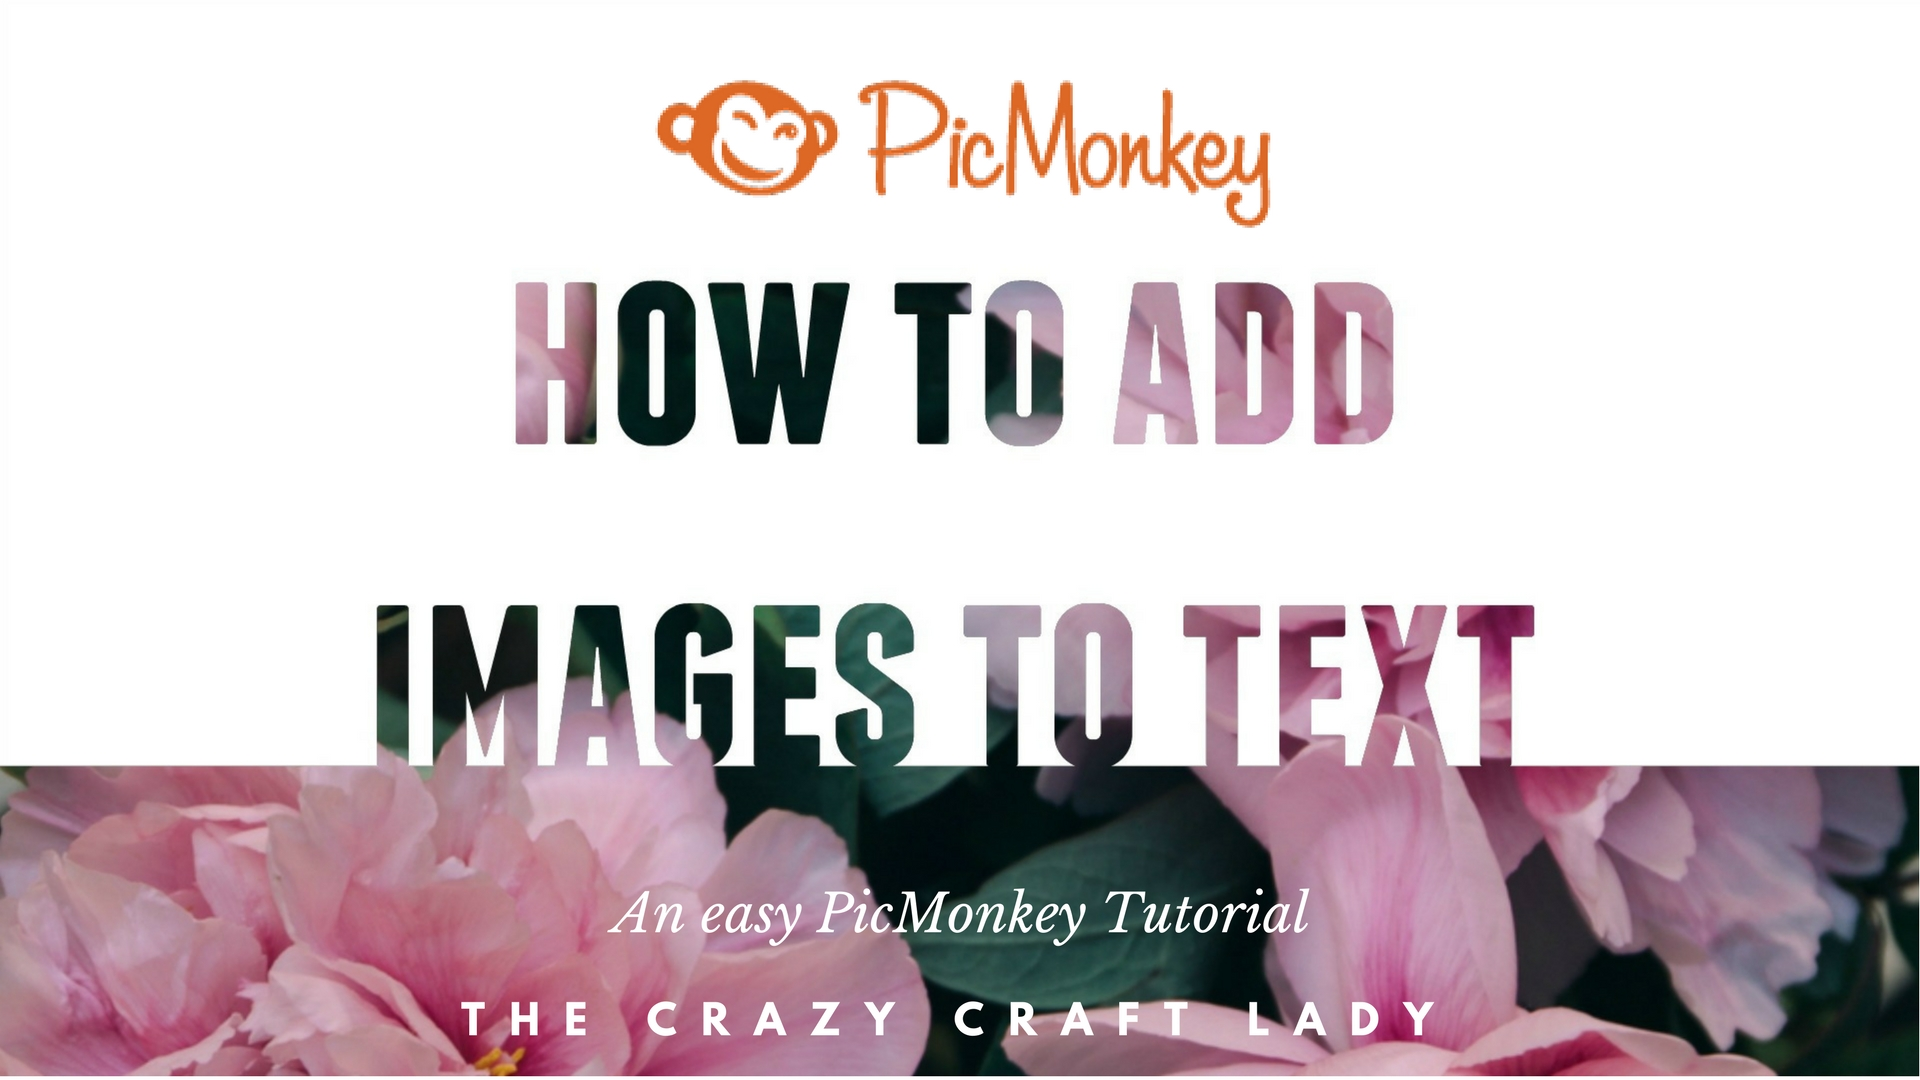 Follow this simple video tutorial and learn how to easily place an image in text - for FREE - using PicMonkey. See how to quickly add images to text and create printables with endless design possibilities.